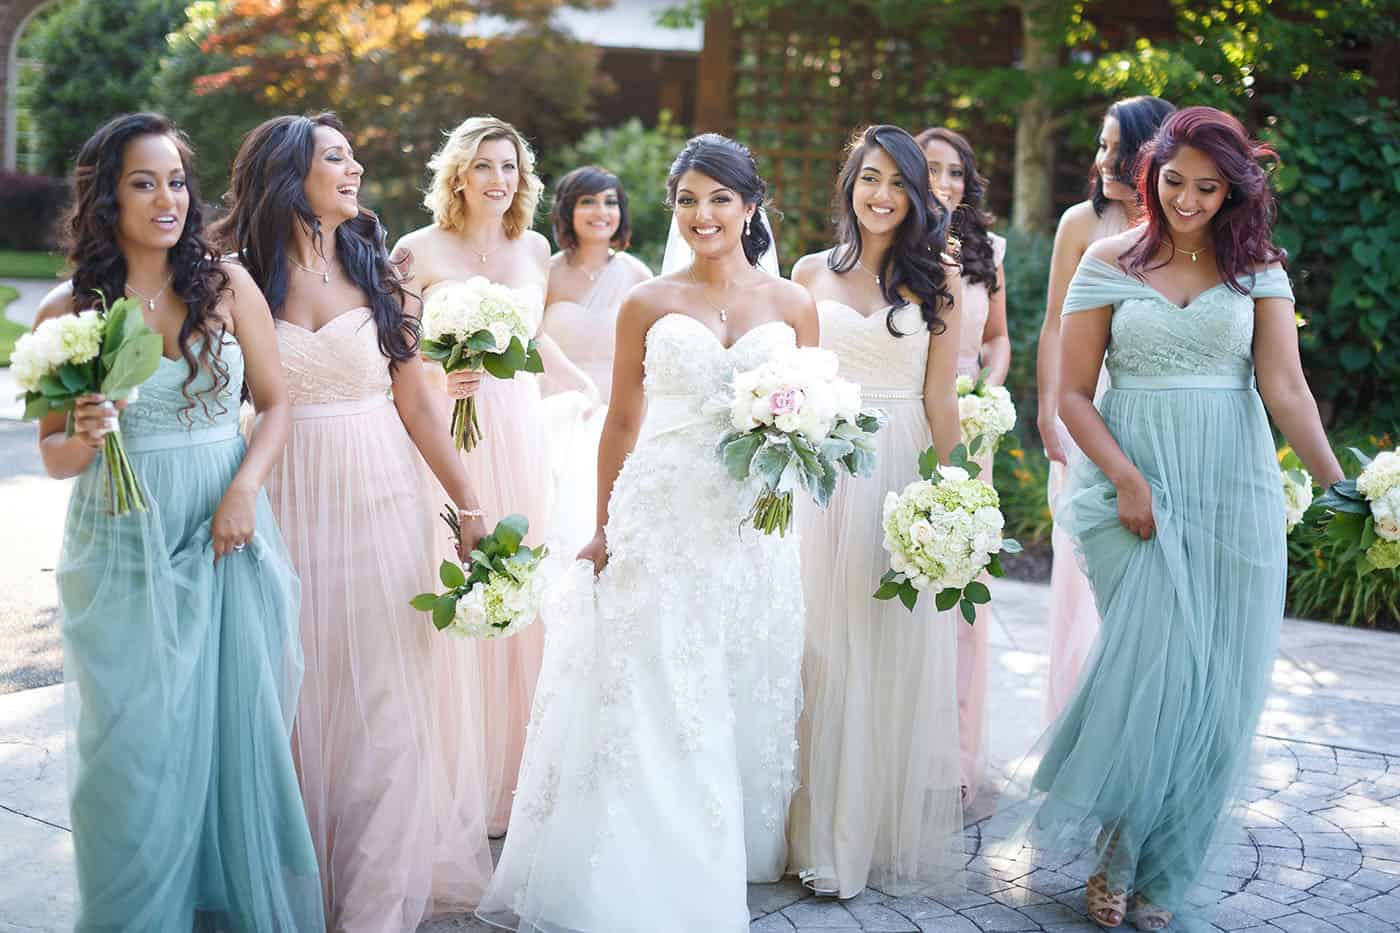 This is the Key to Amazing Client Relationships | A group of pastel-gowned bridesmaids stroll outside alongside the bride.